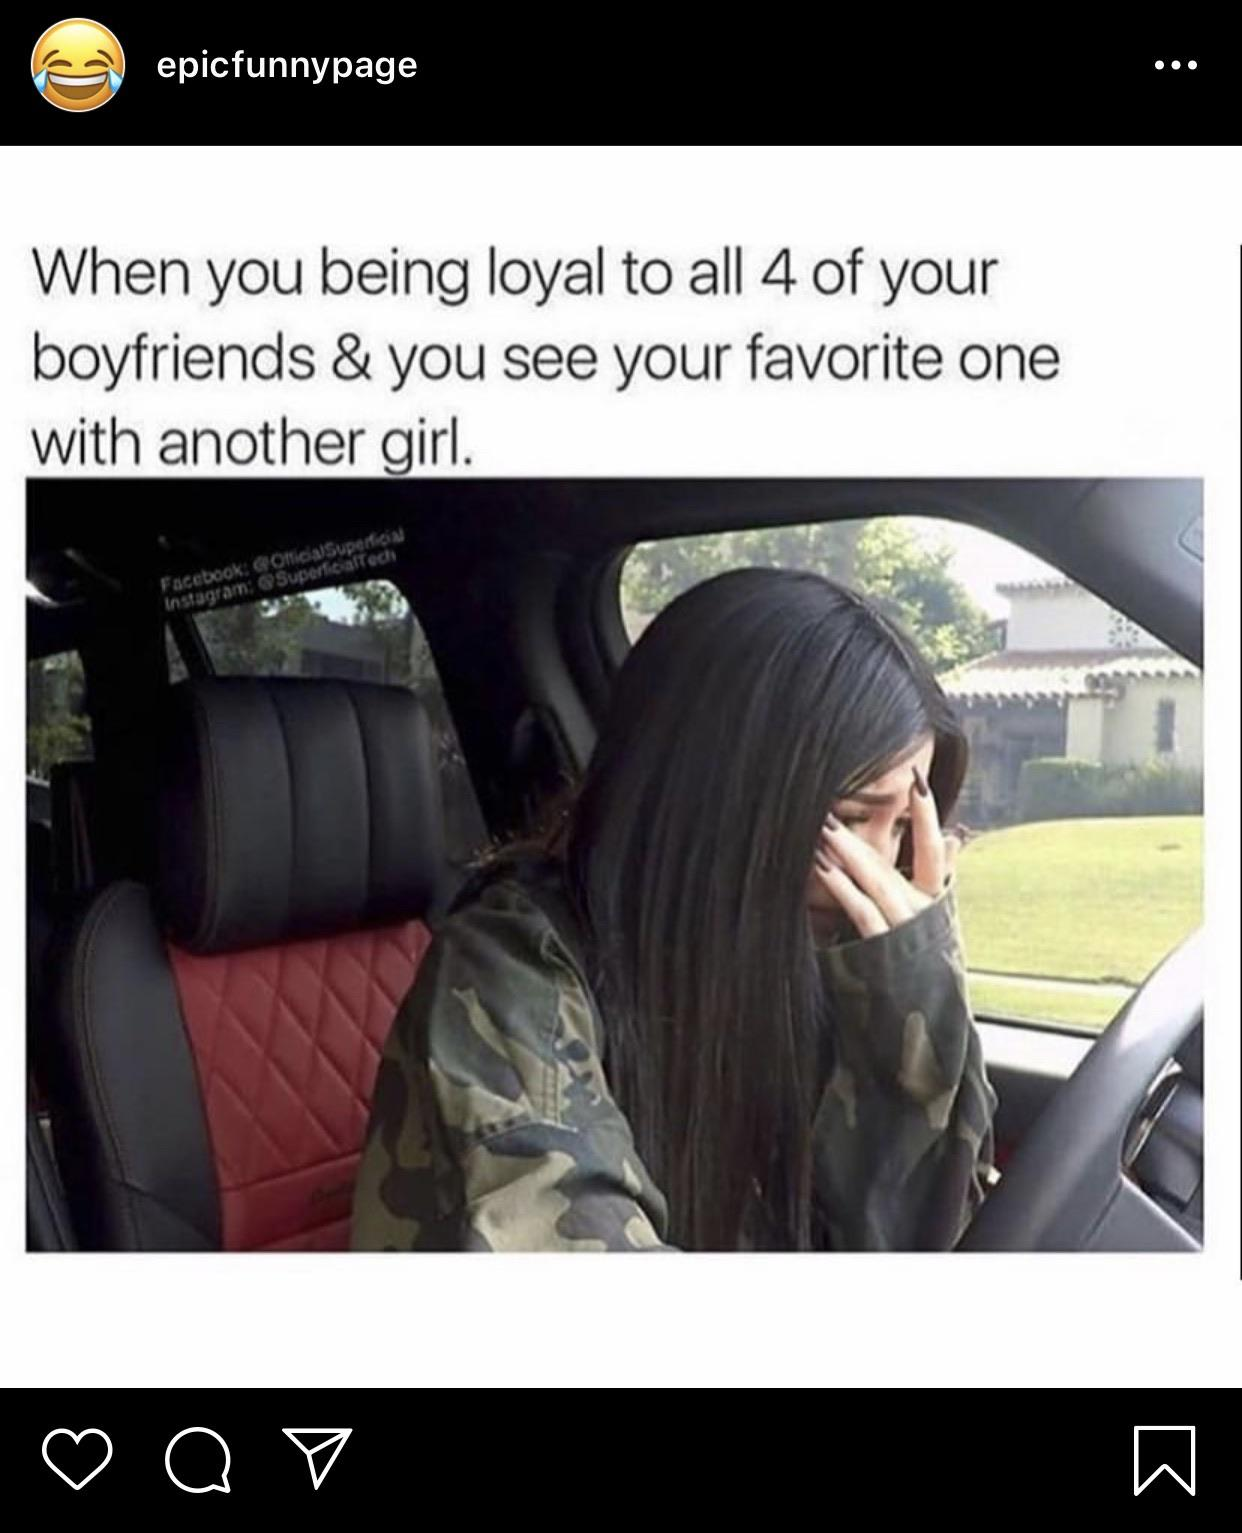 Cringe, Instagram, Facebook cringe memes Cringe, Instagram, Facebook text: epicfunnypage When you being loyal to all 4 of your boyfriends & you see your favorite one with another girl.